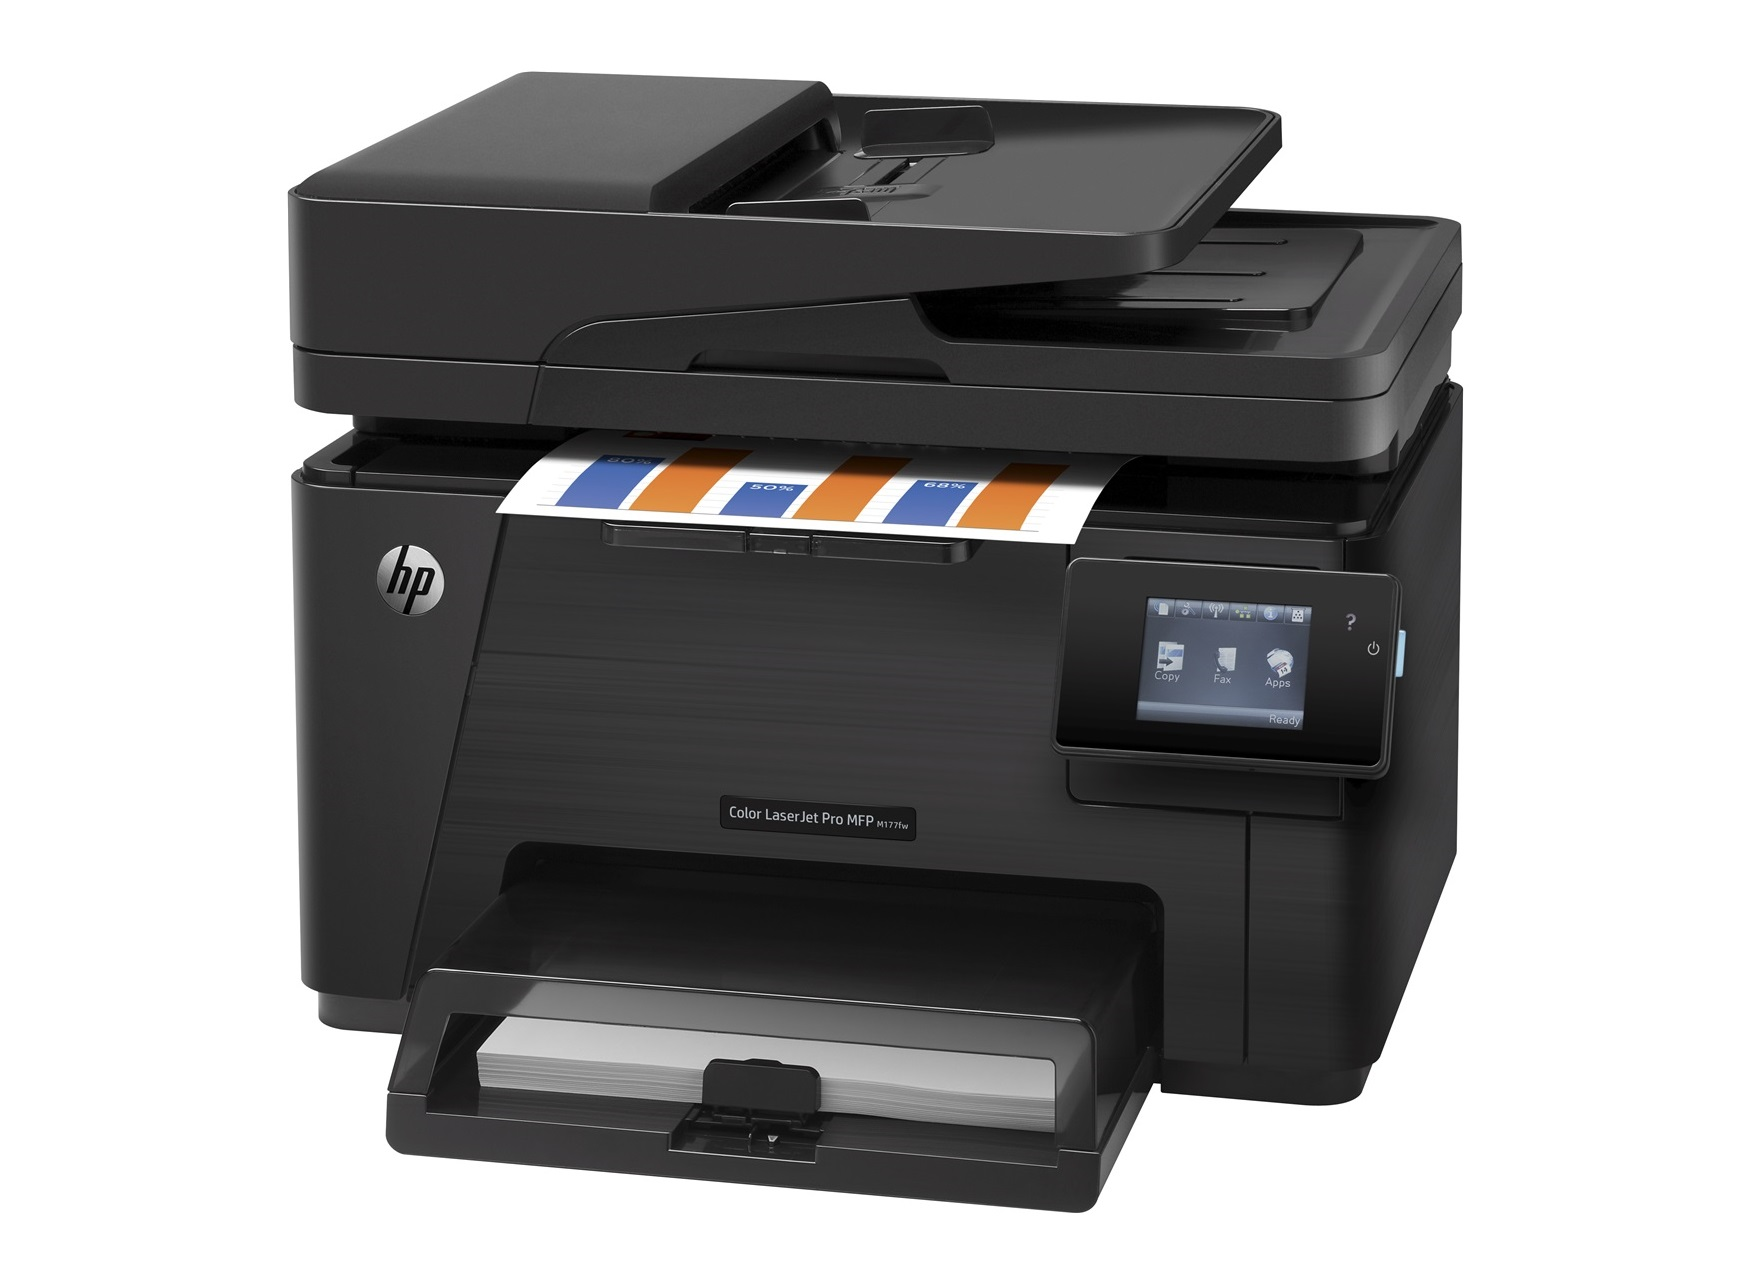 HP CLJ Pro MFP M177fw (A4, 16/4 ppm, USB 2.0, Ethernet, Wi-Fi, Print/Scan/Copy/FAX)